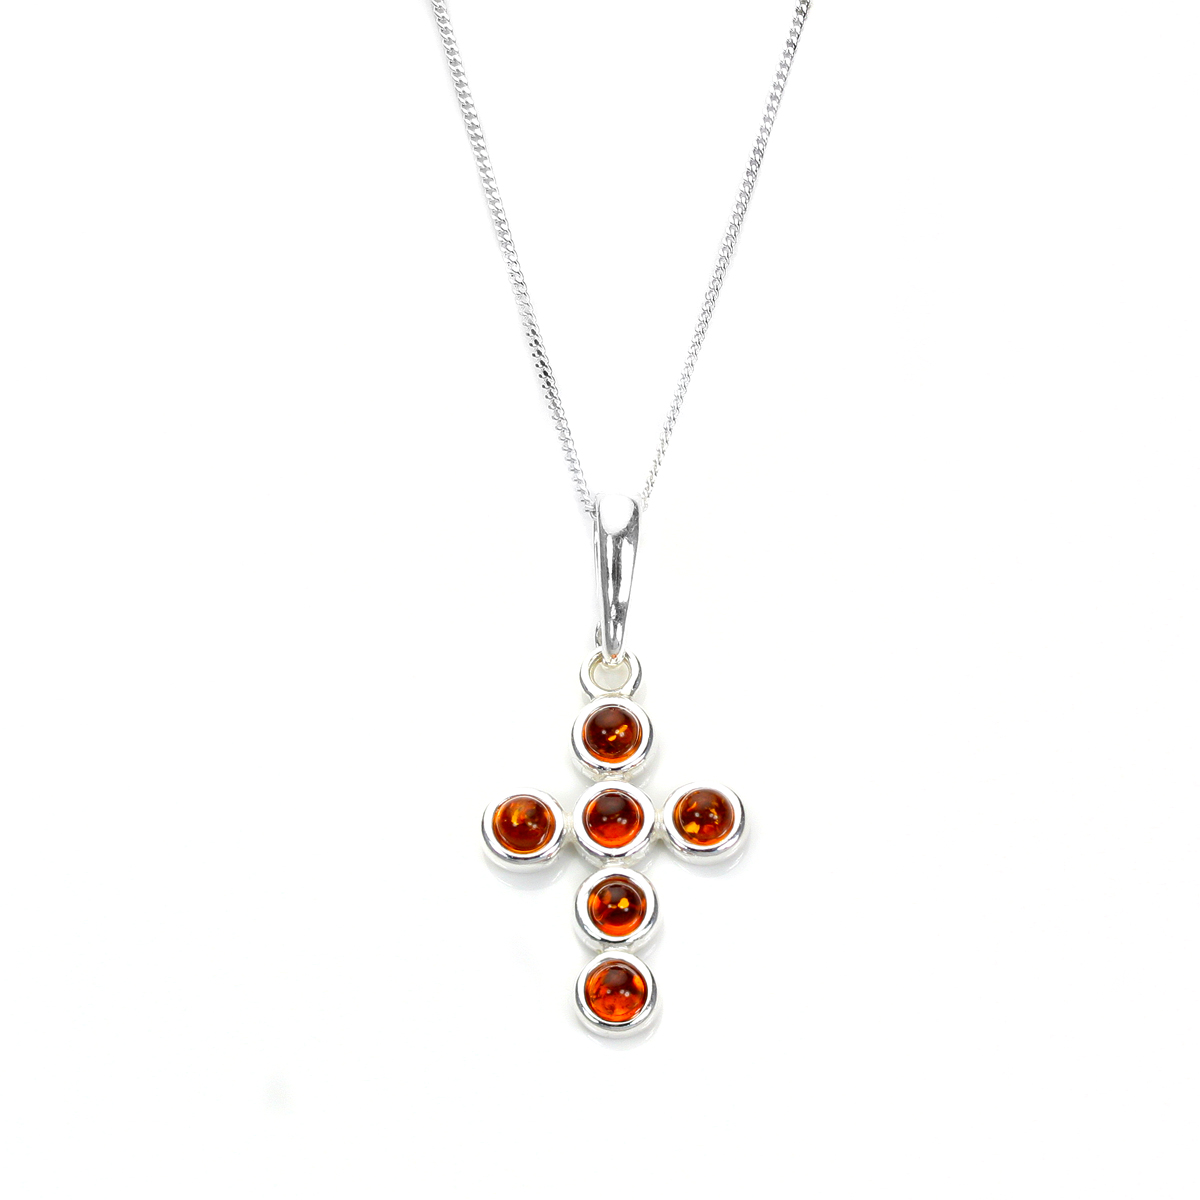 An image of Sterling Silver Baltic Amber Round Bead Cross Pendant